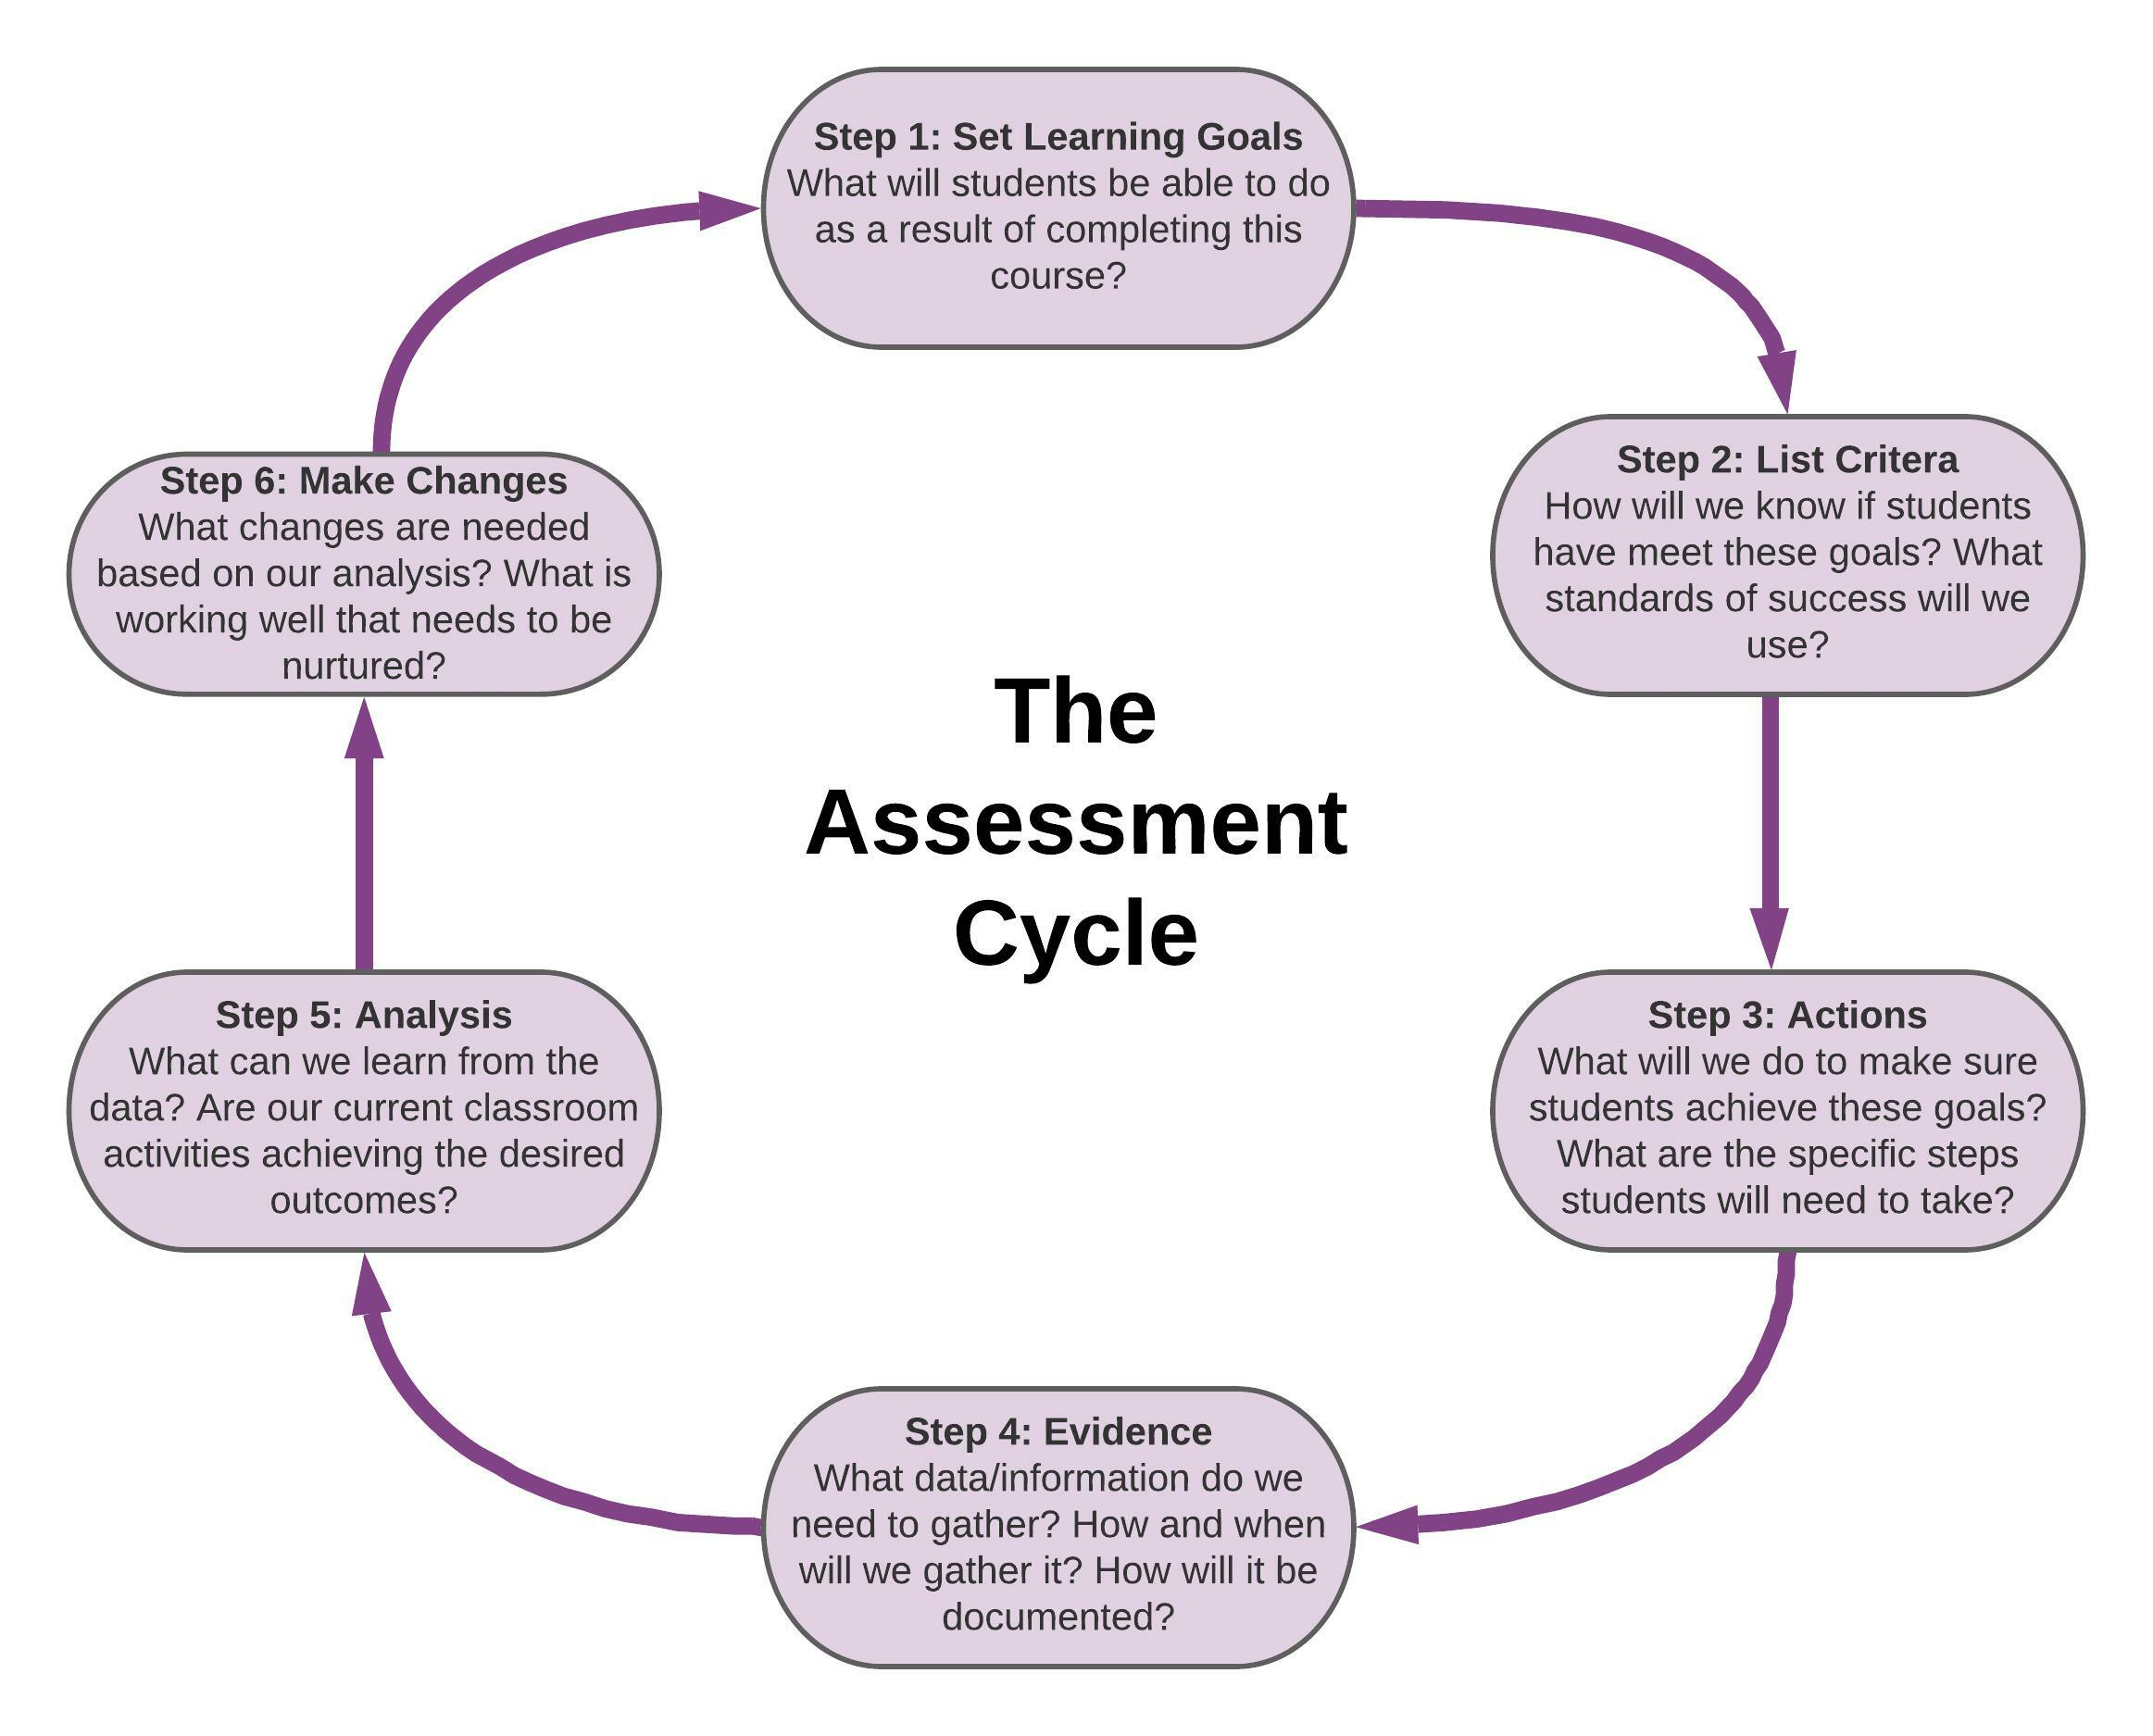 The Assessment Cycle: (1) Set Learning Goals - What will students be able to do as a result of completing this course?